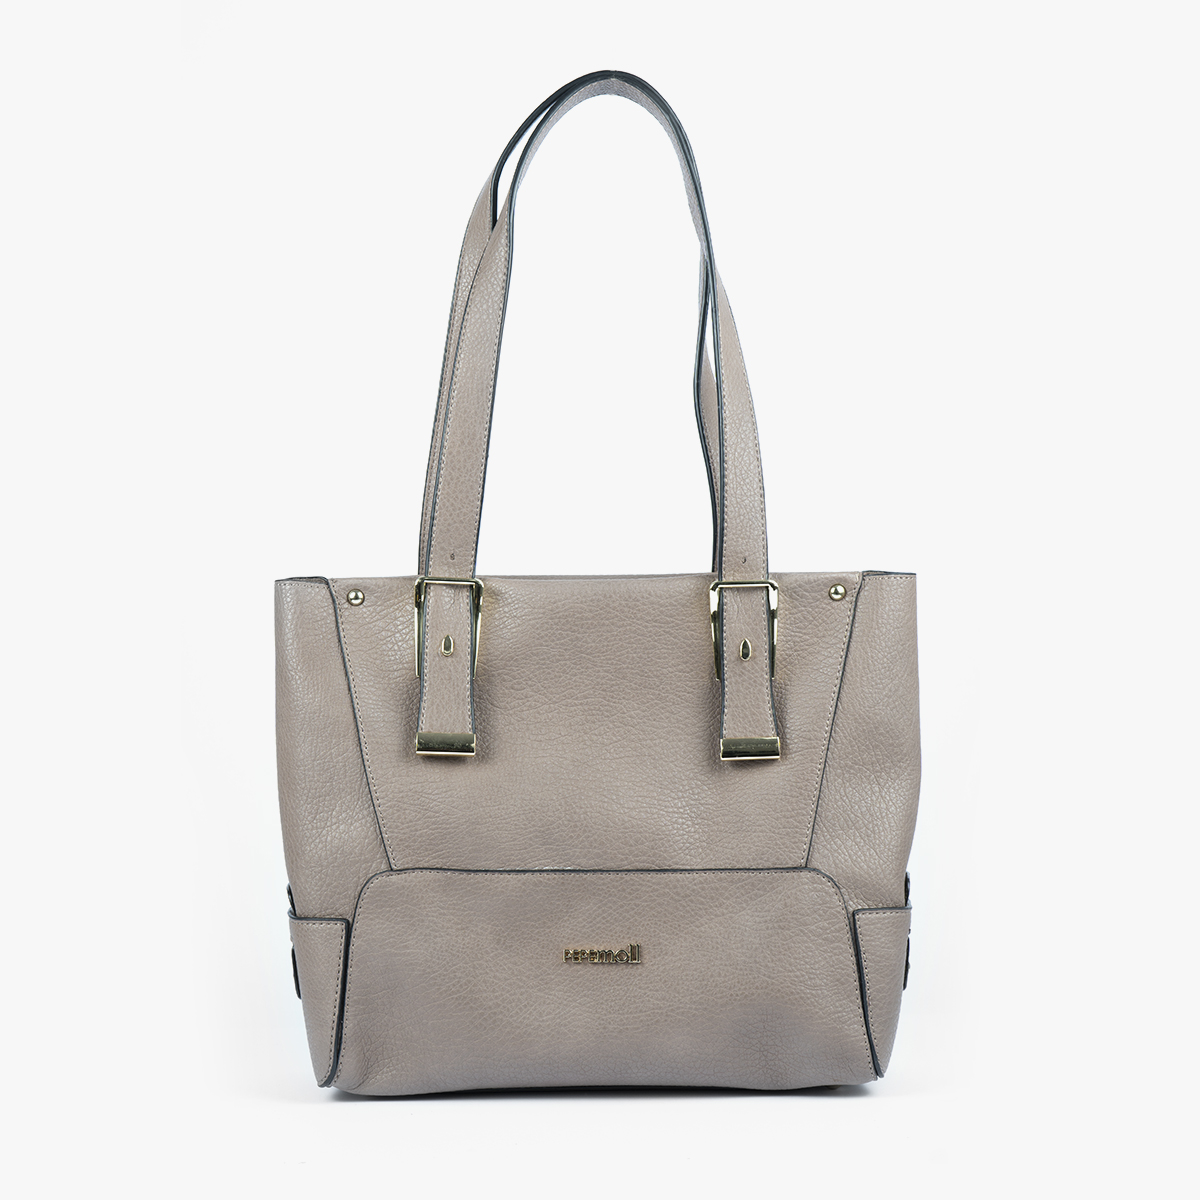 41123 mirage taupe frontal